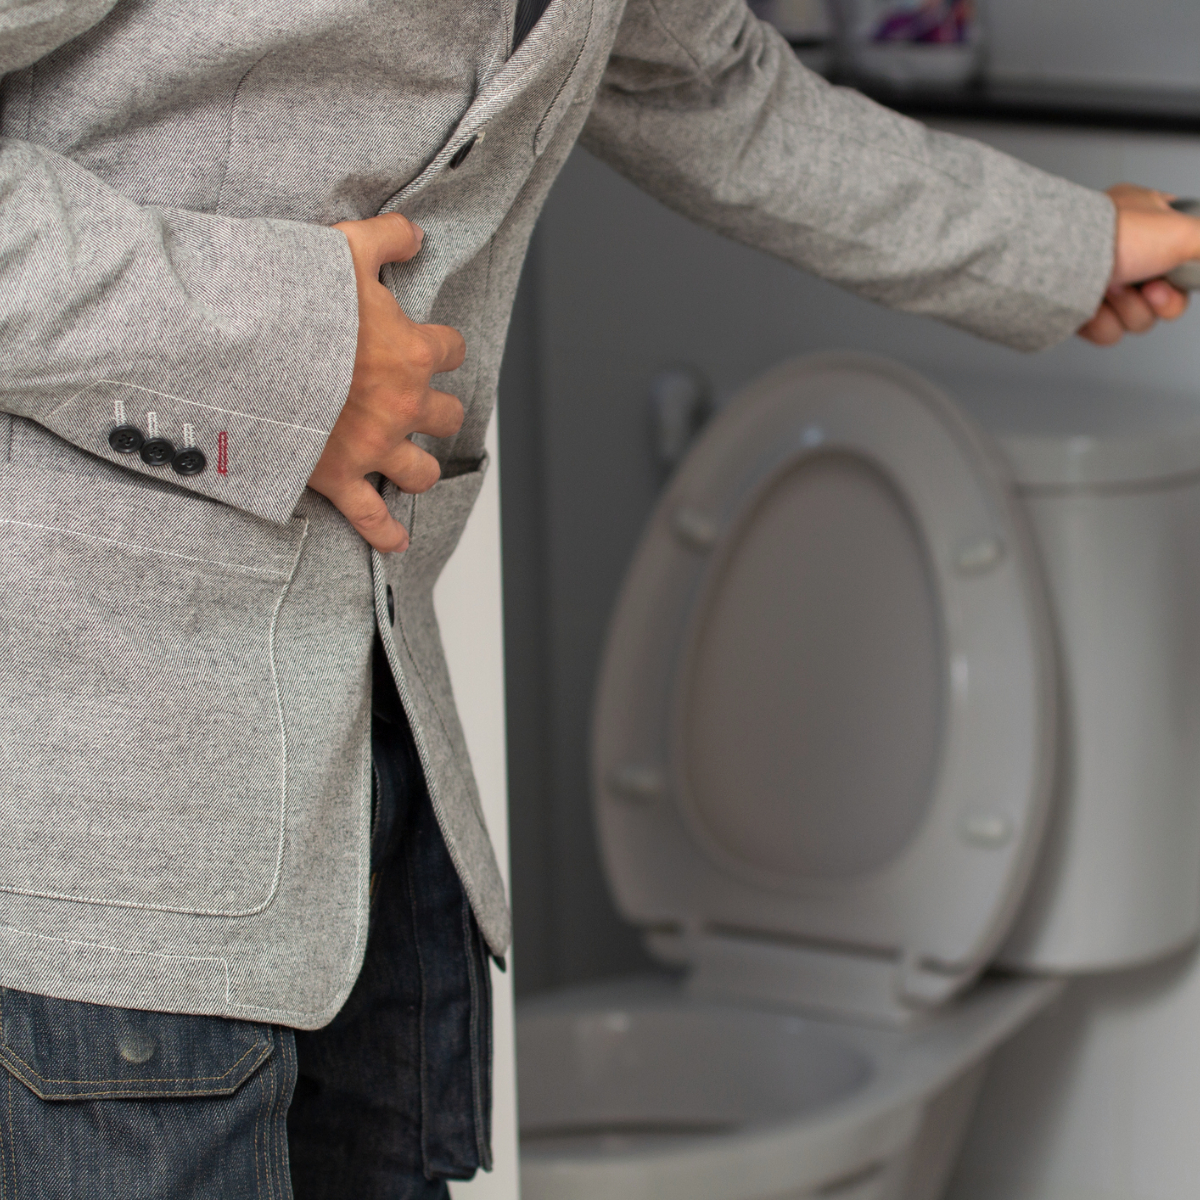 Constipation: 5 Food items to avoid if you are suffering from the bowel issue